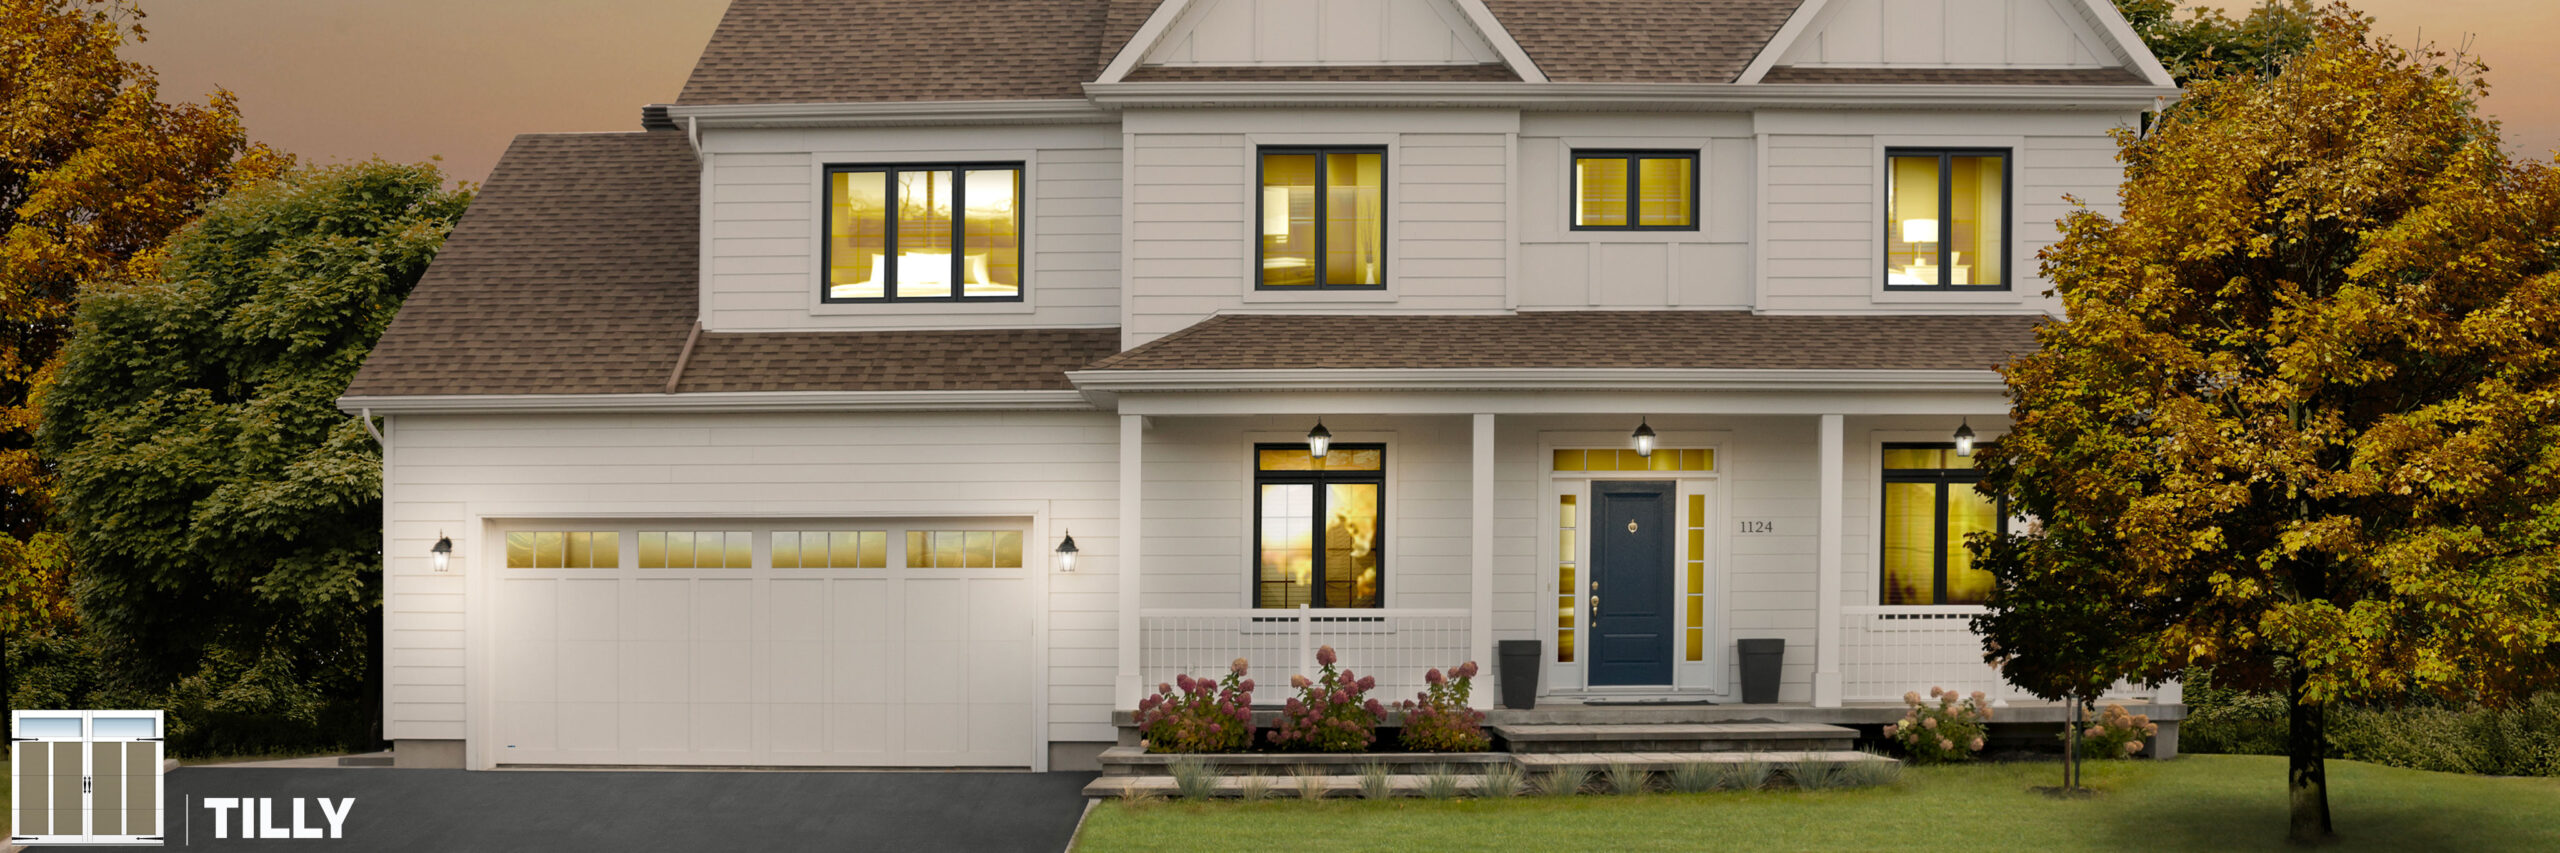 tilly carriage house style garage door by garex scaled